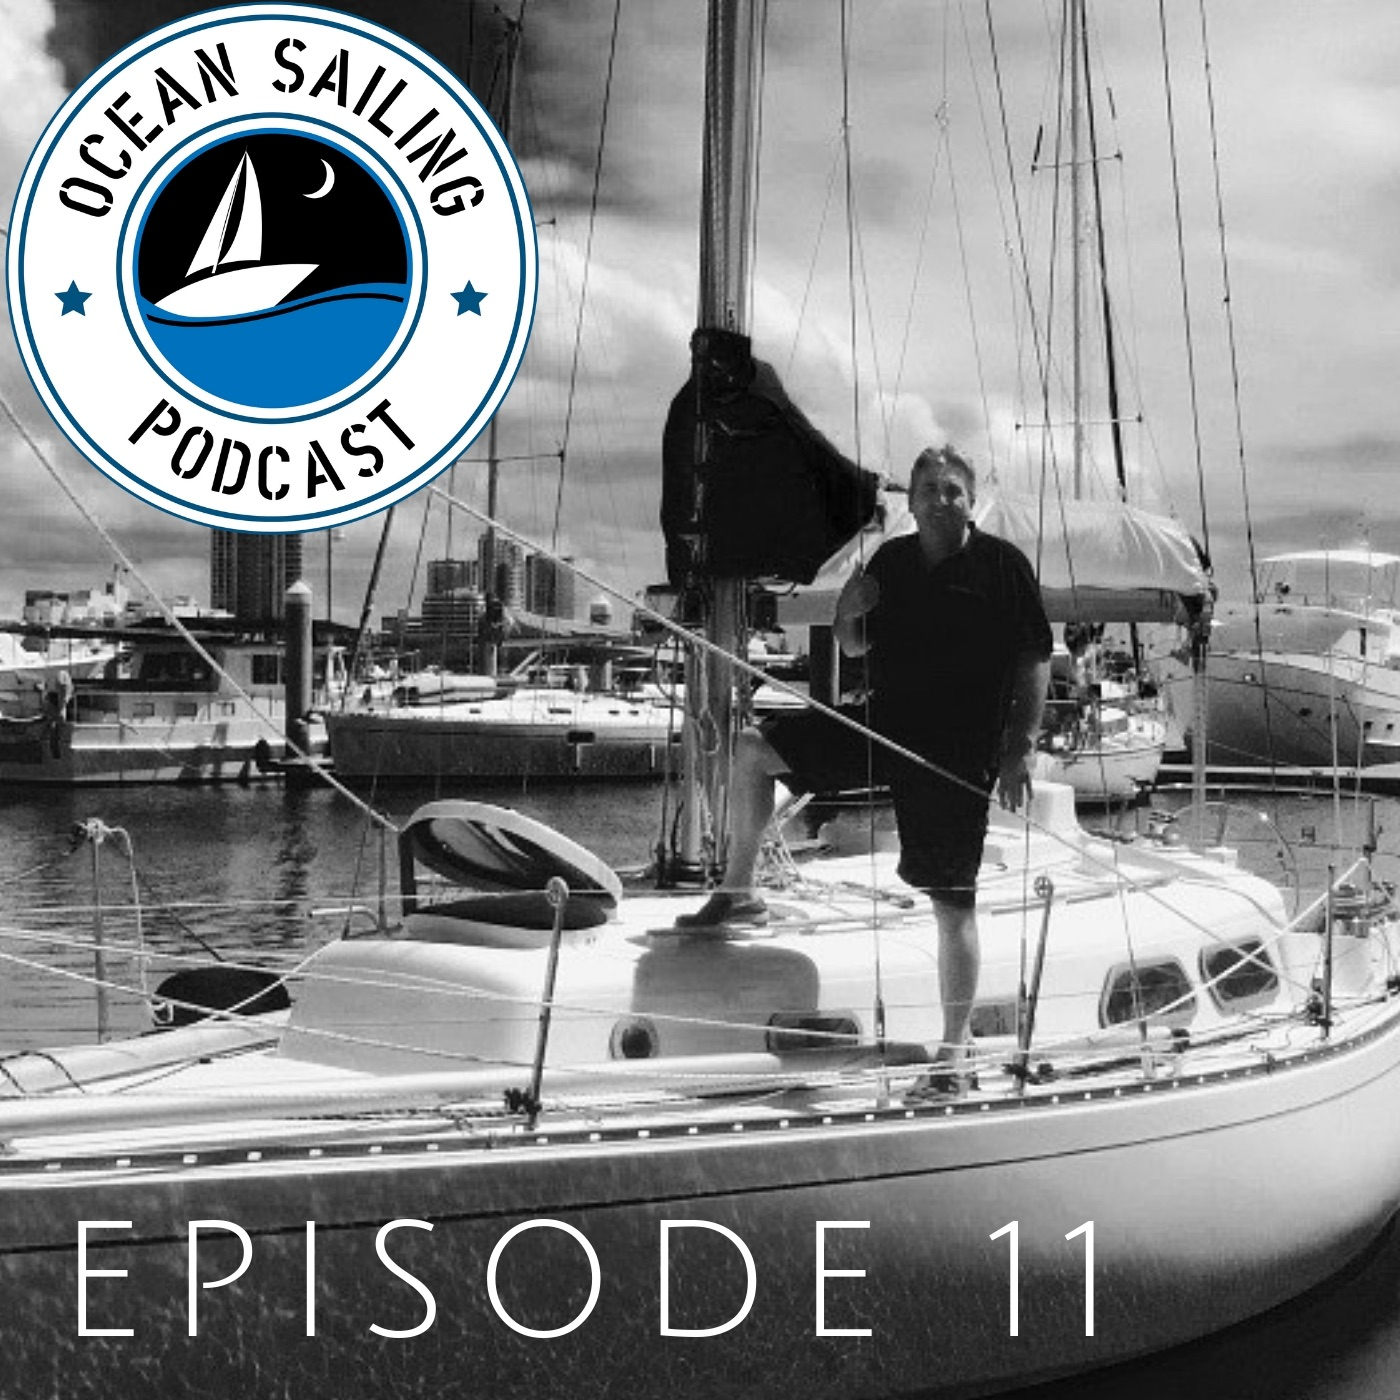 Andy Lamont solo circumnavigation S&S 34